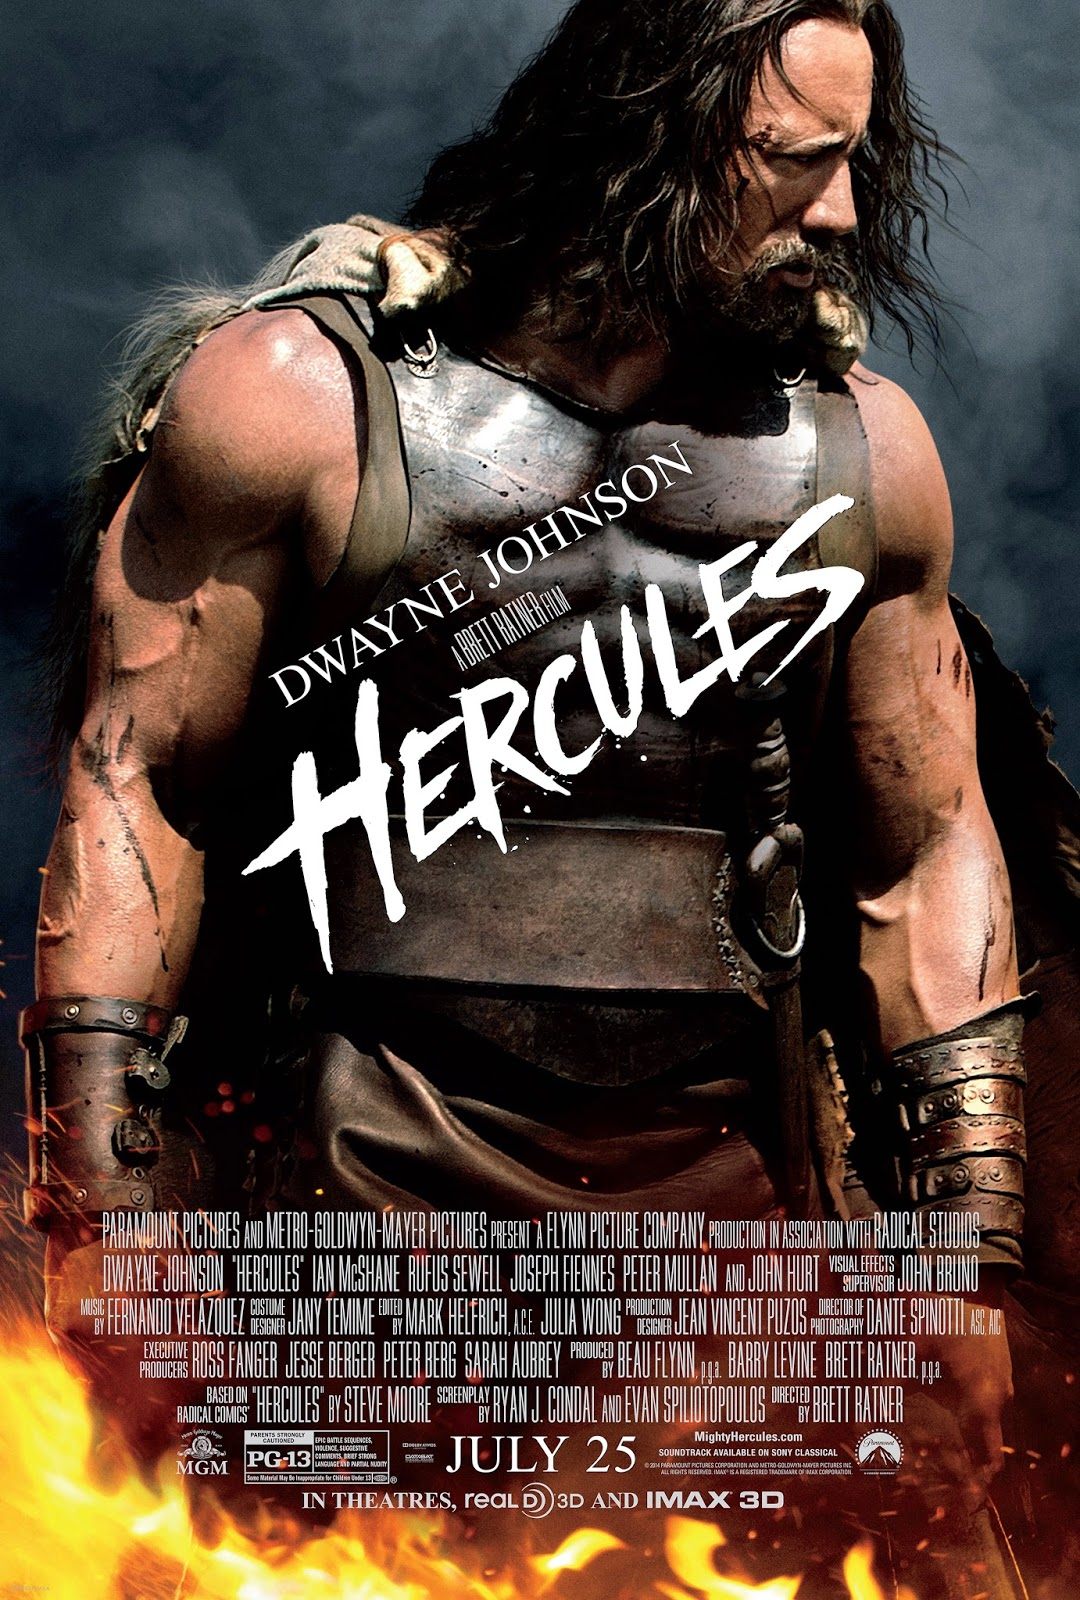 RatedPG-13  Epic Battle Sequences  Violence  Suggestive Comments    Dwayne Johnson Hercules Movie Poster